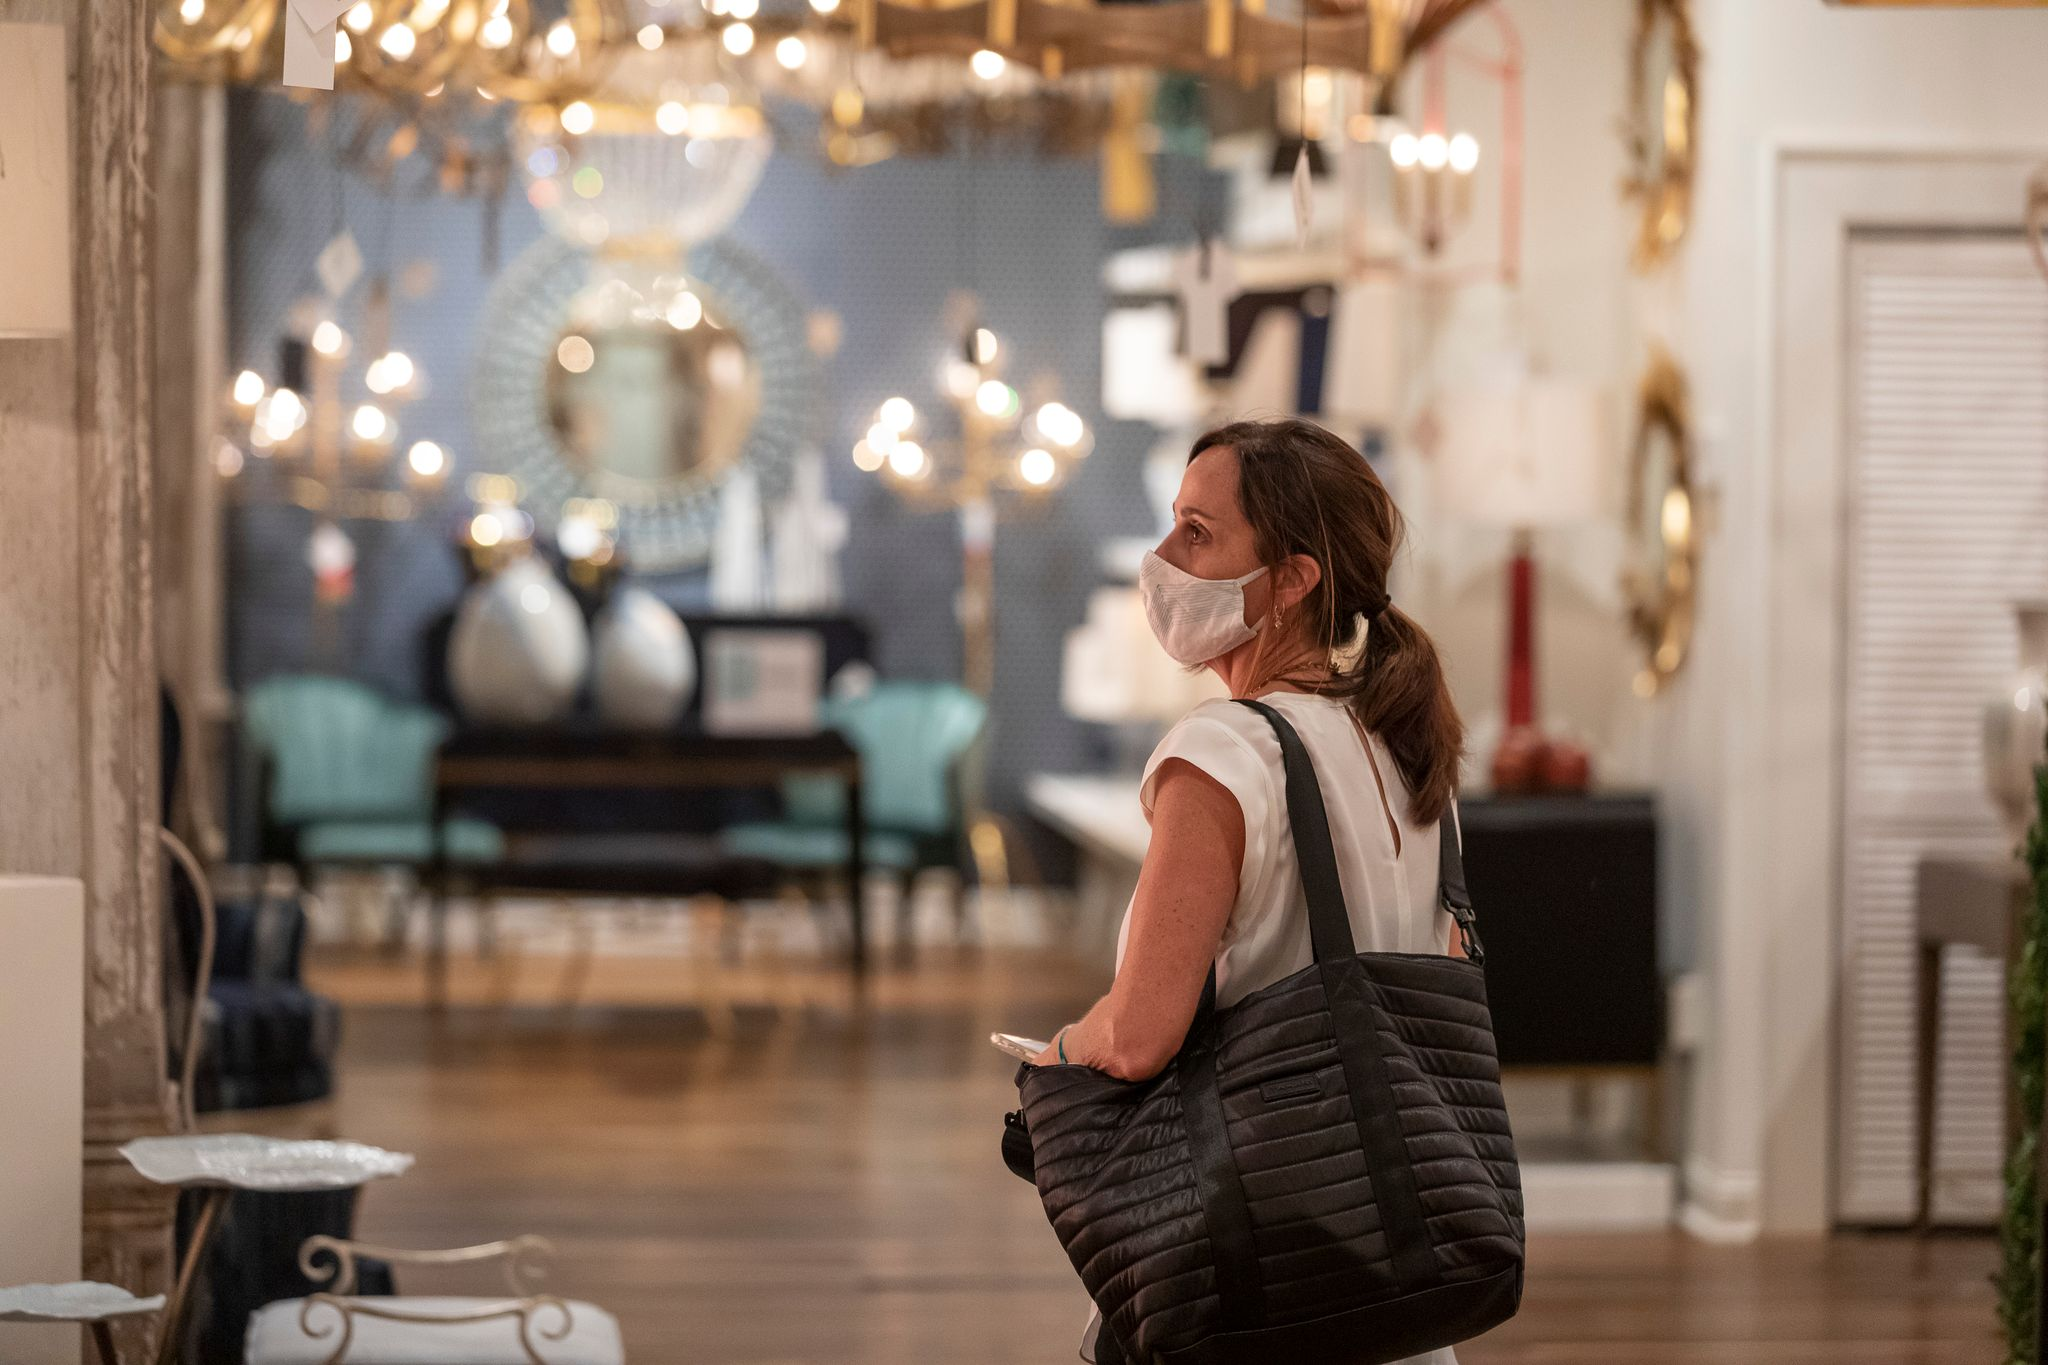 A woman stands in a furniture showroom looking at various objects. She is carrying a large bag and wearing a cloth mask.